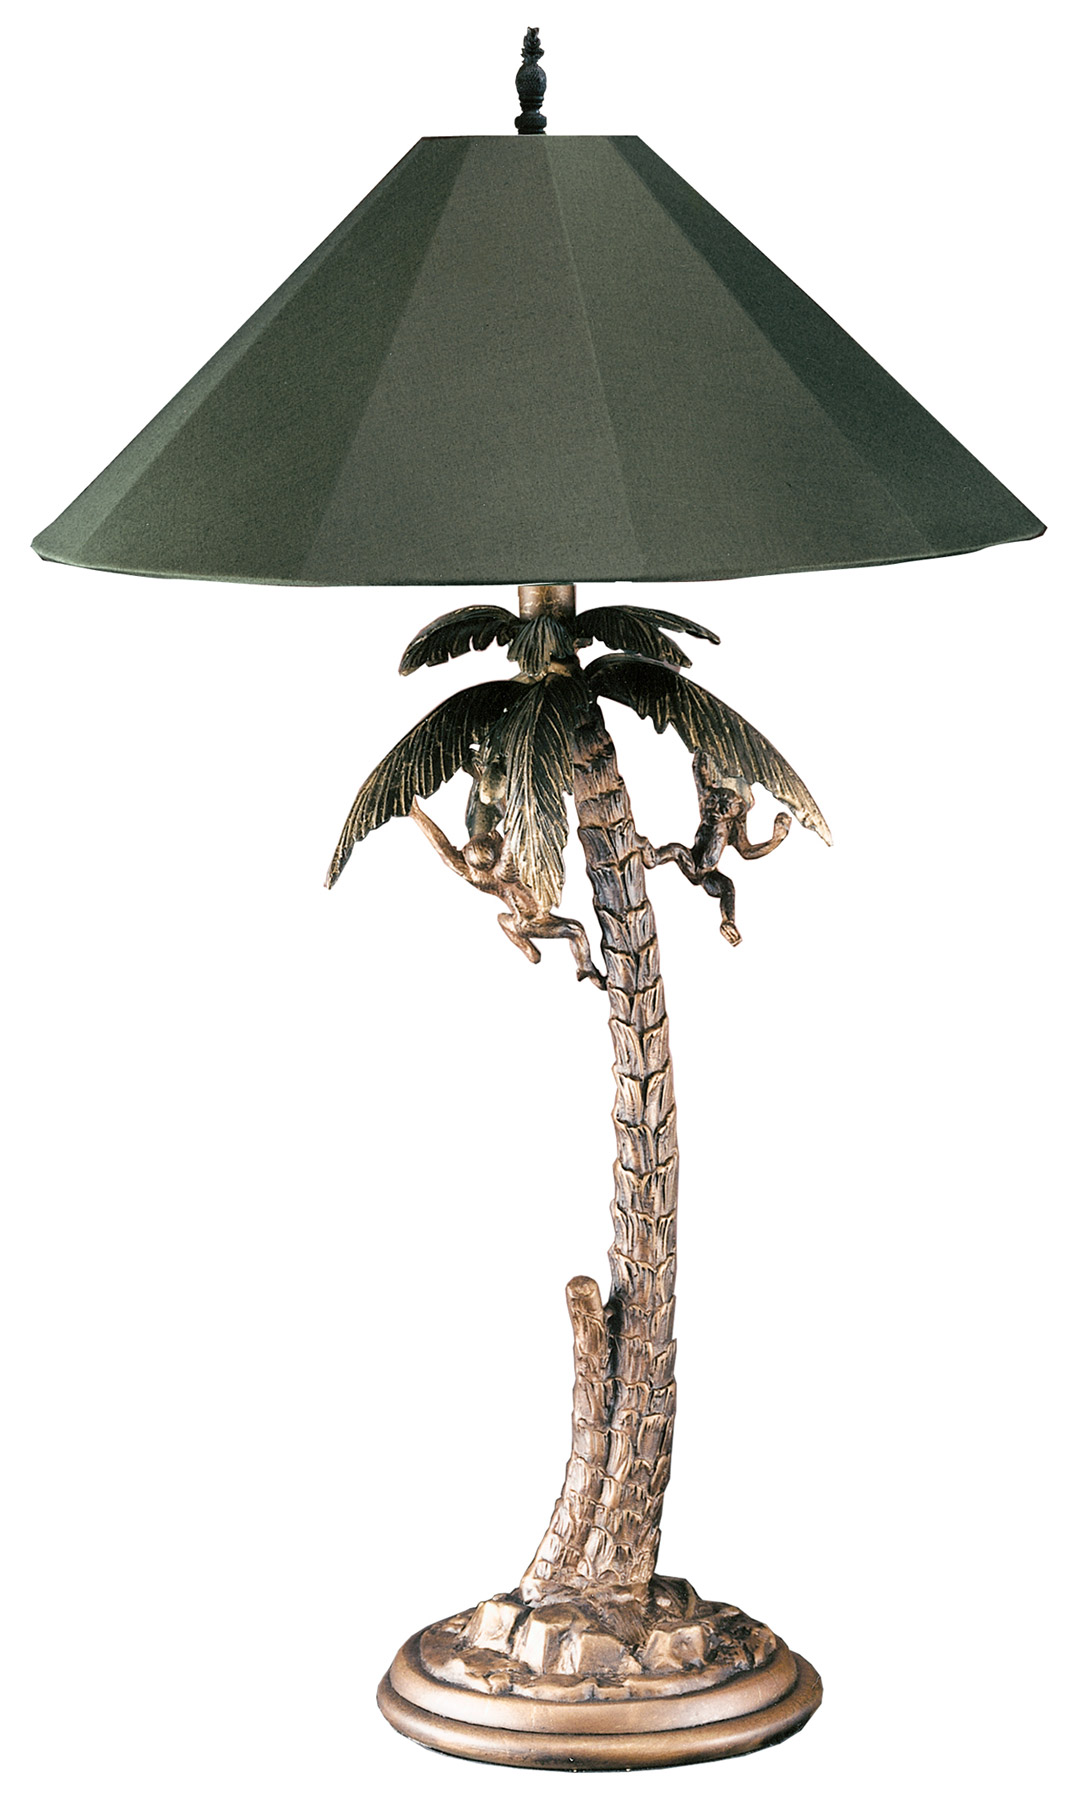 10 Reasons To Buy Palm Tree Lamps Warisan Lighting